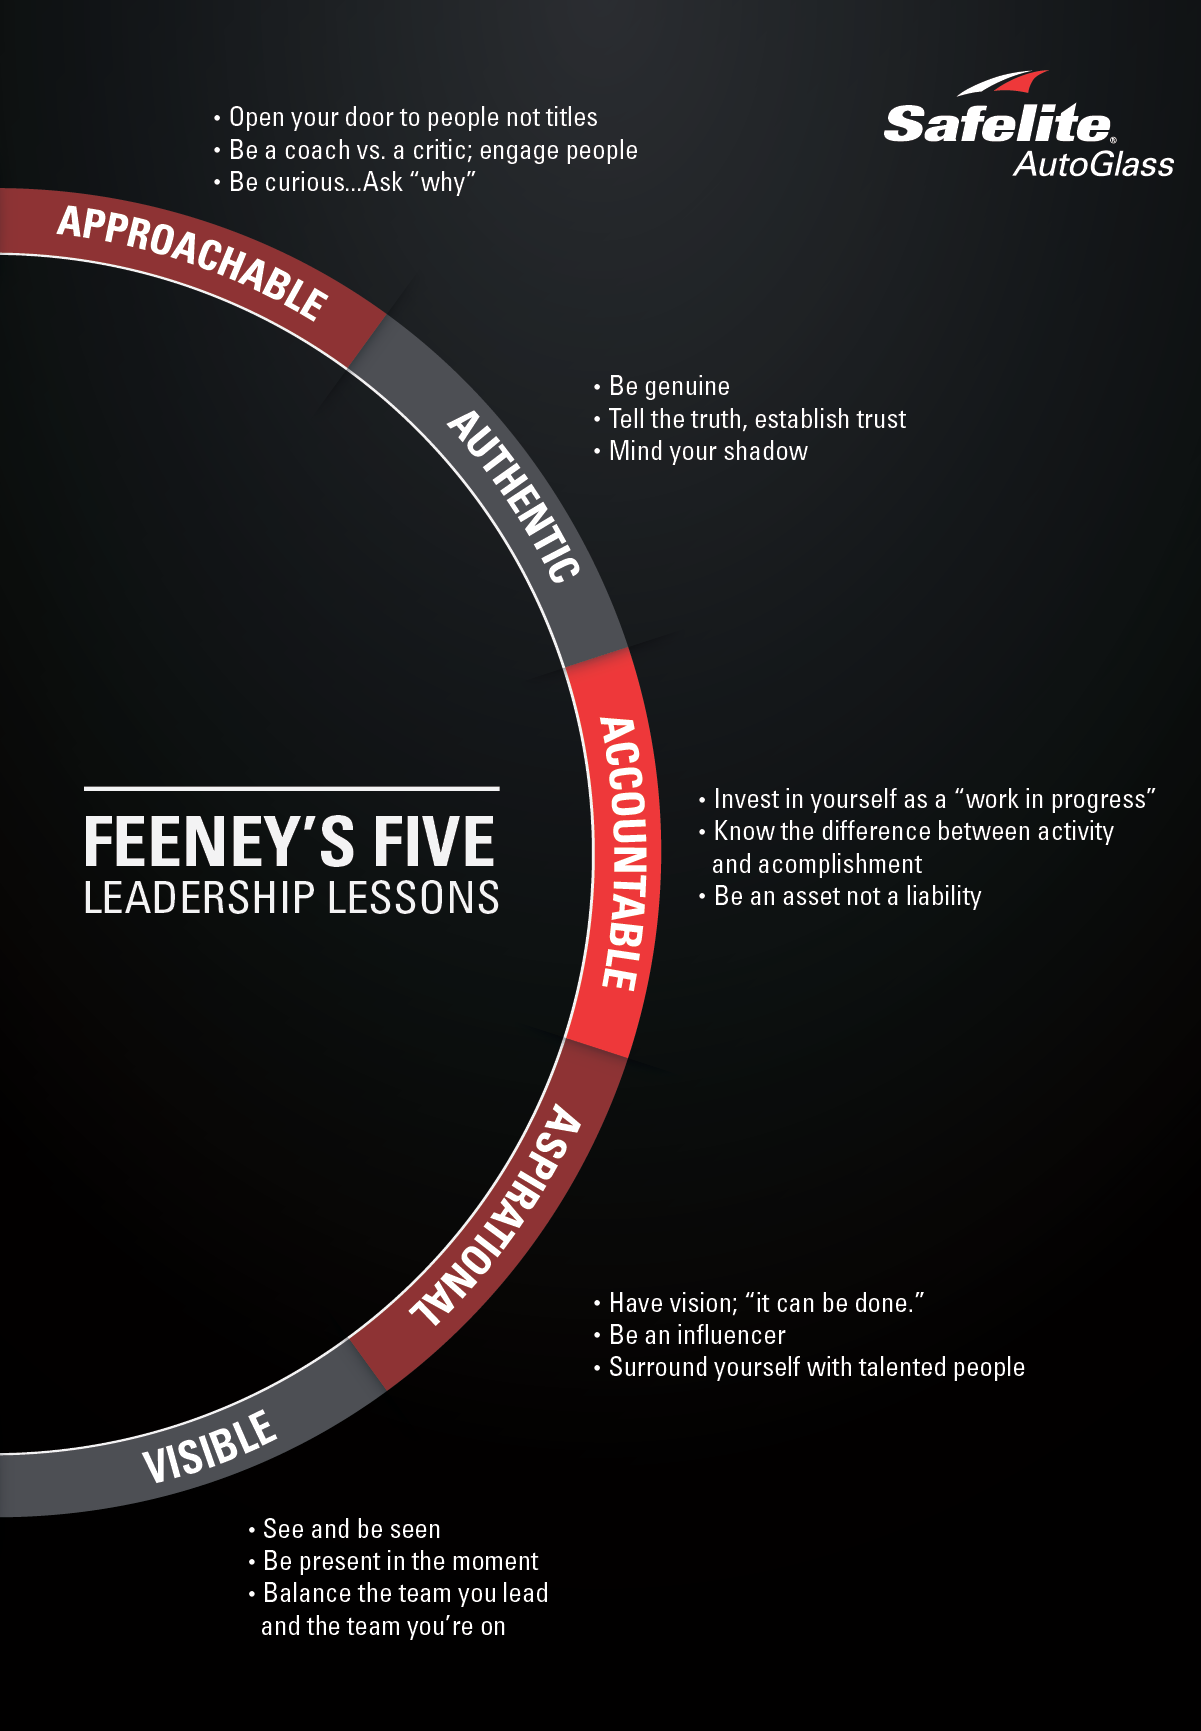 This infographic highlights the four As and one V of Tom Feeney's Five Leadership Lessons.